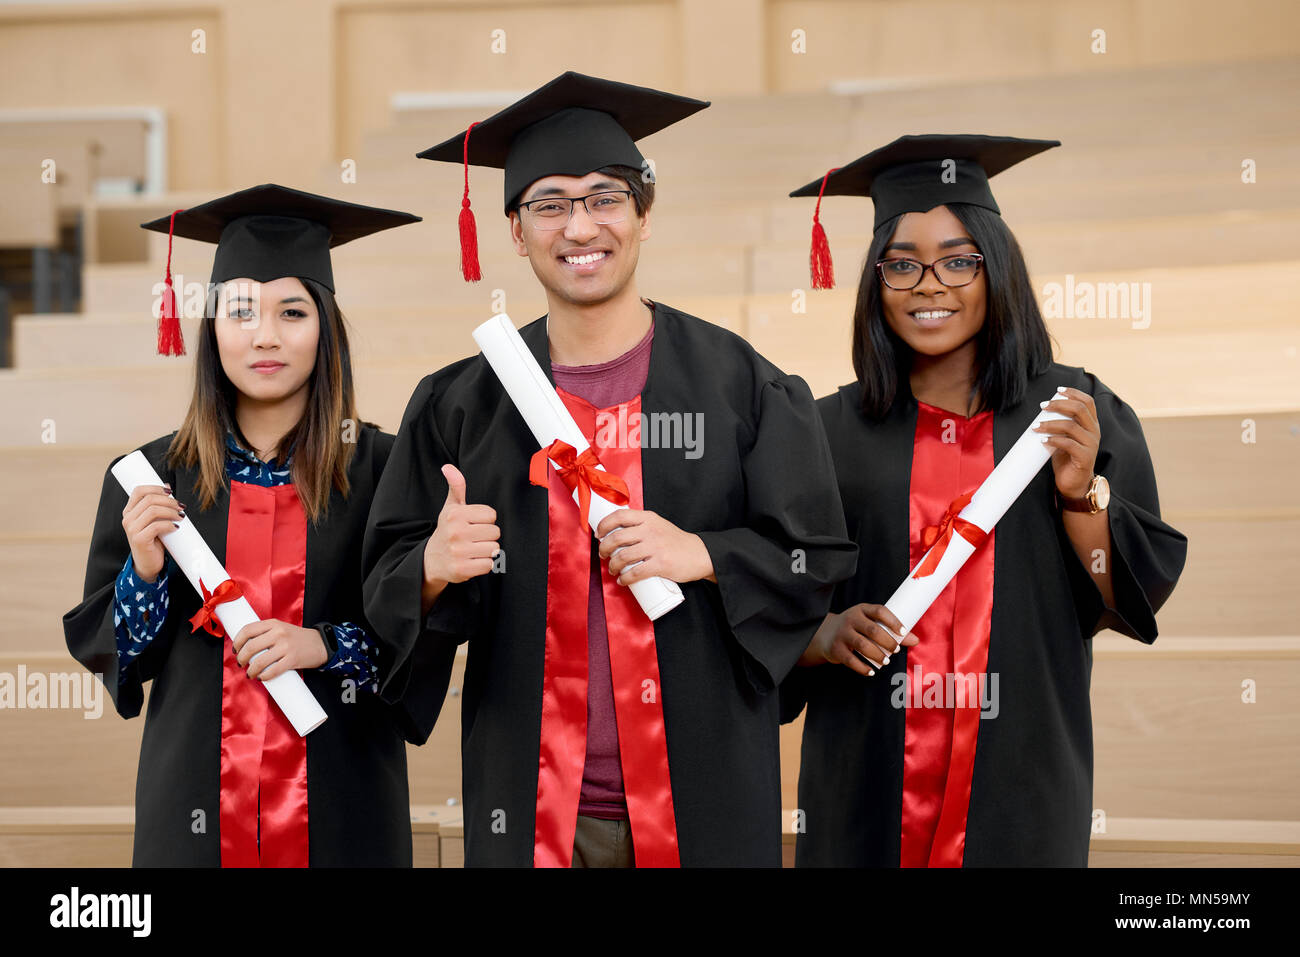 Wearing Cap And Gowns Stock Photos & Wearing Cap And Gowns Stock ...